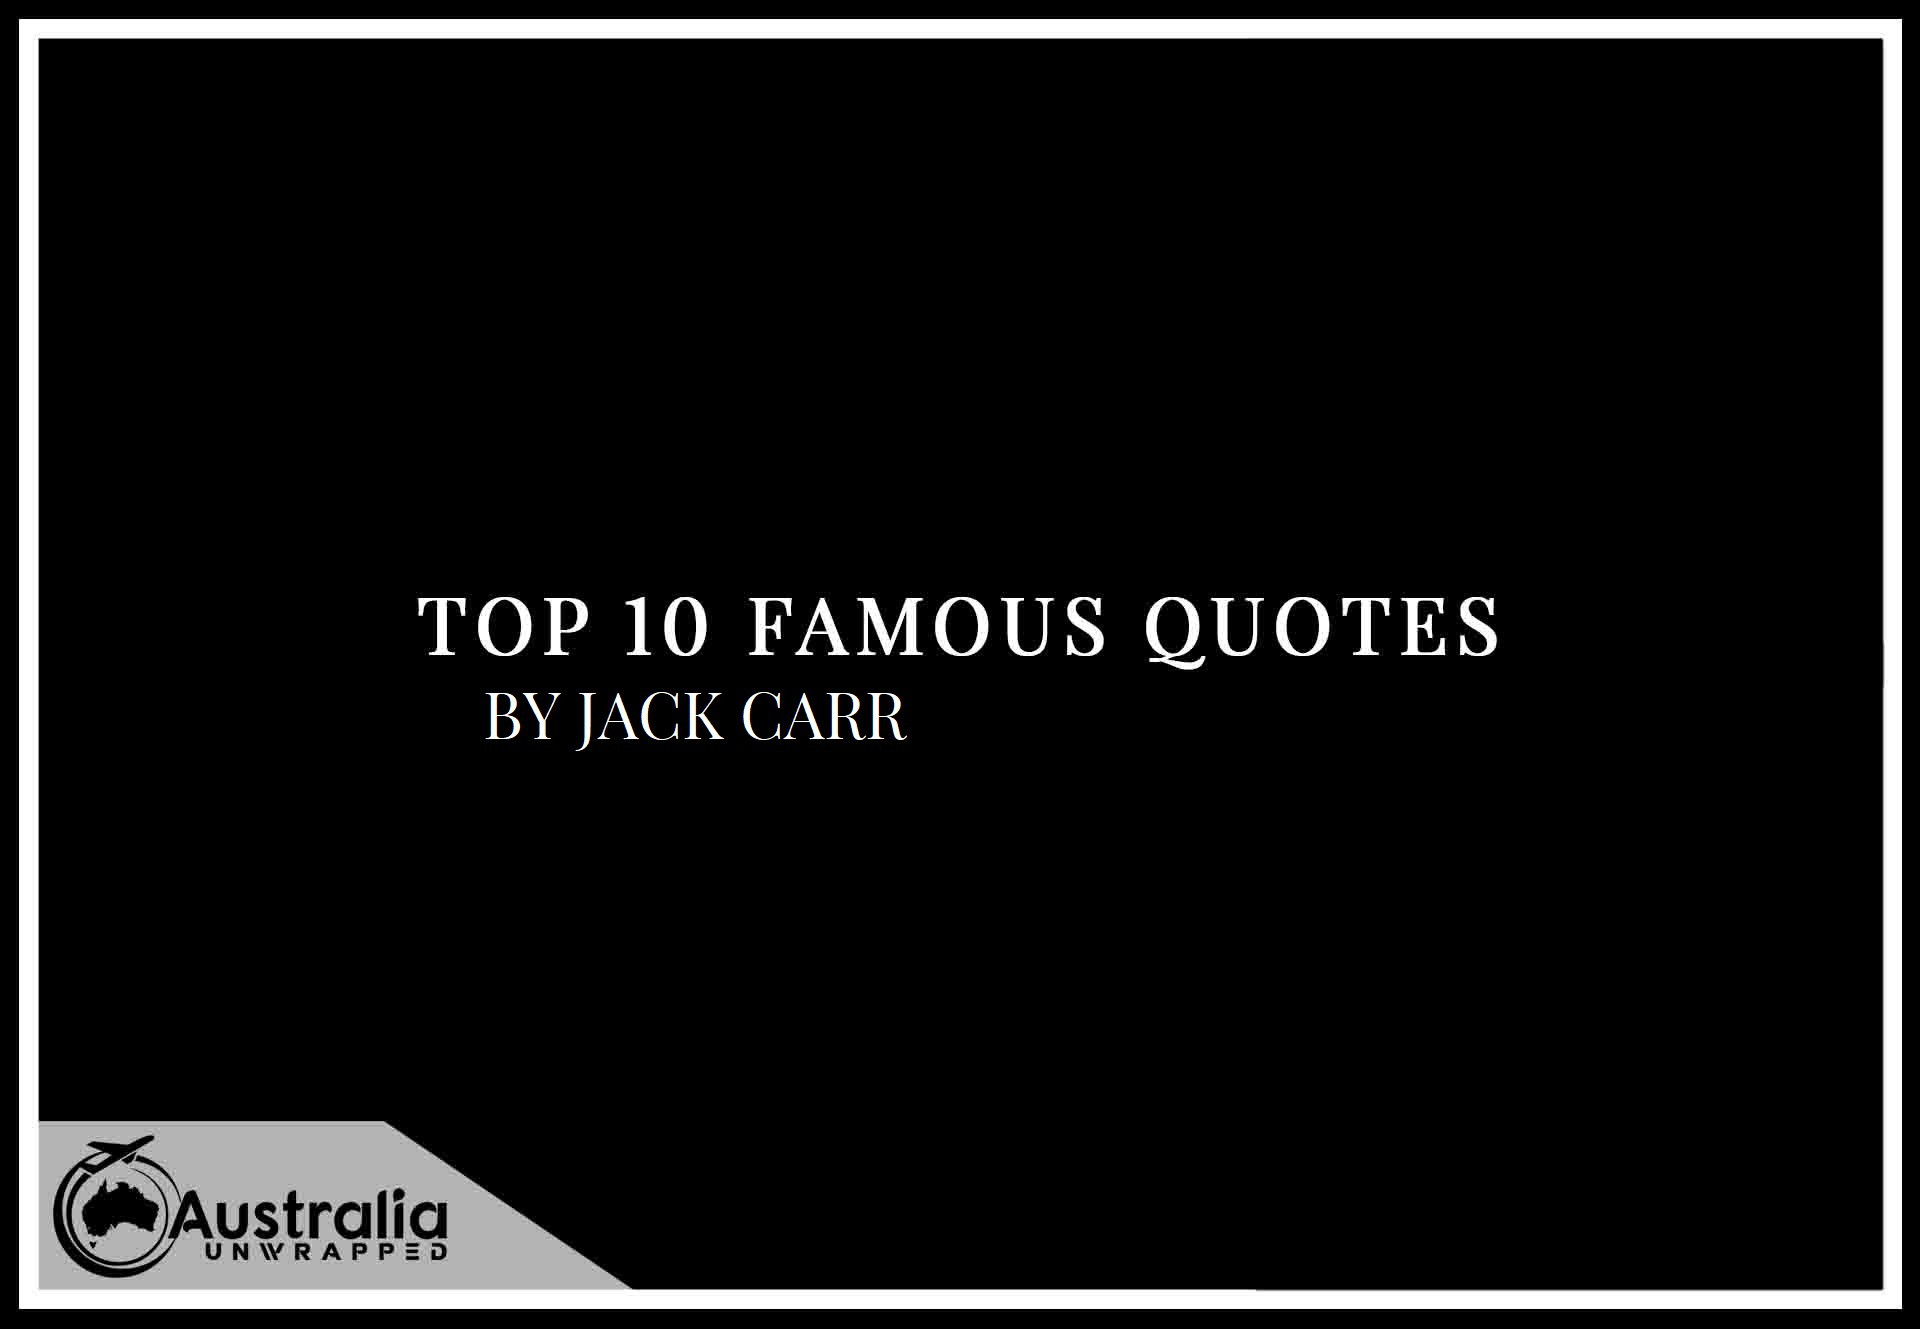 Top 10 Famous Quotes by Author Jack Carr